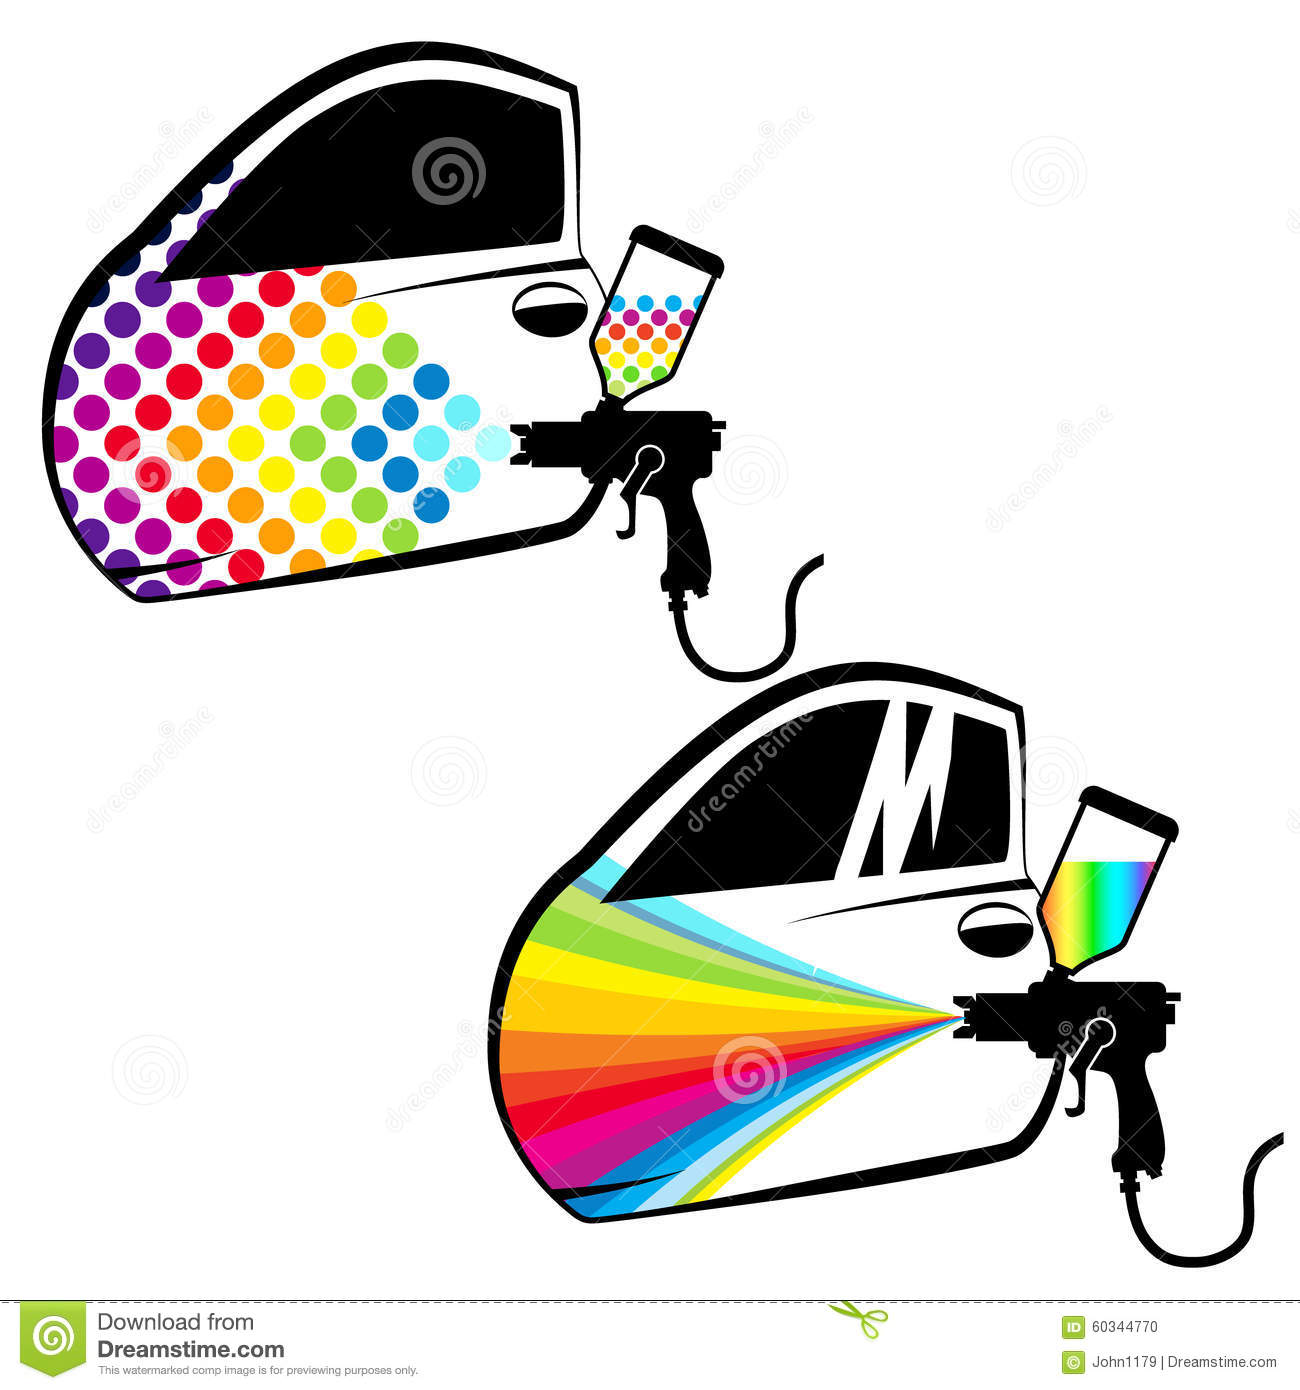 Car Painting Vector Stock Vector. Illustration Of Painting